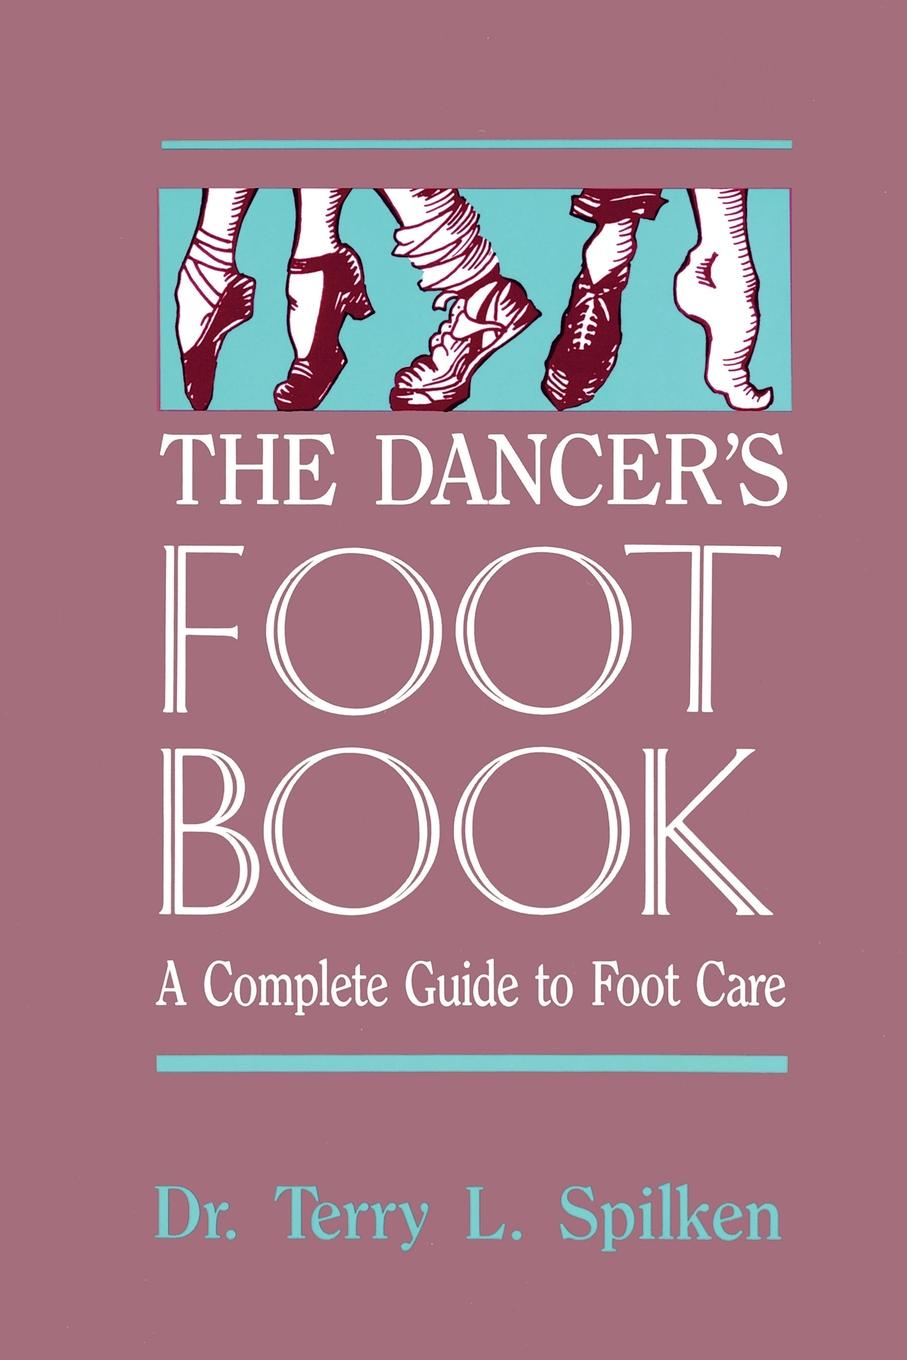 Terry L. Spilken, Dr Terry L. Spilken The Dancer.s Foot Book the complete guide to sports injuries